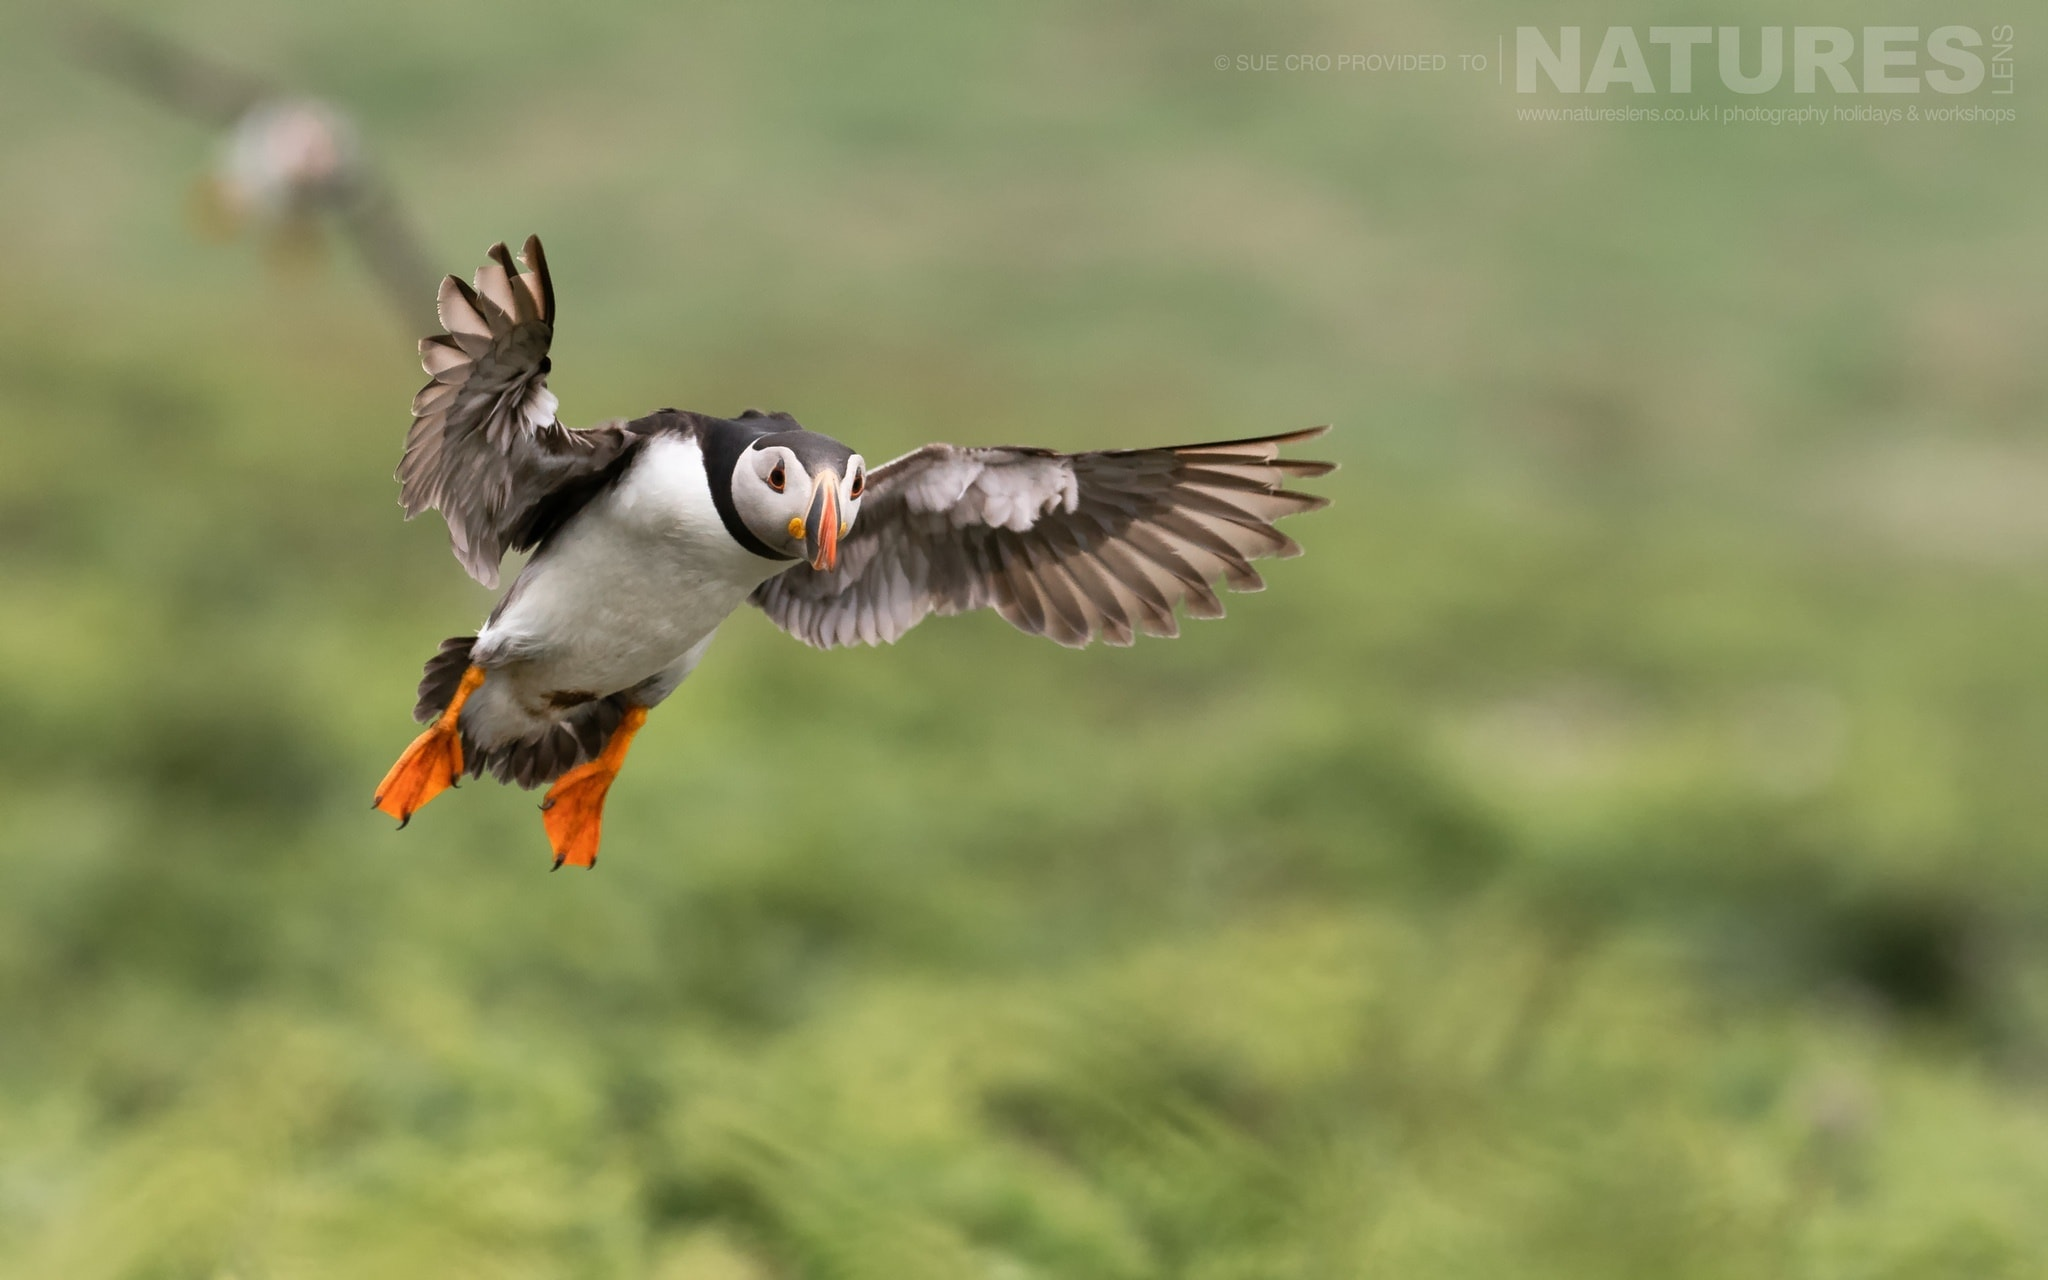 Coming In For A Landing Amongst The Sea Campion, This Puffin In Flight Makes For A Classic Skomer Image   Photographed During The NaturesLens Atlantic Puffins Of Skomer Photography Holiday